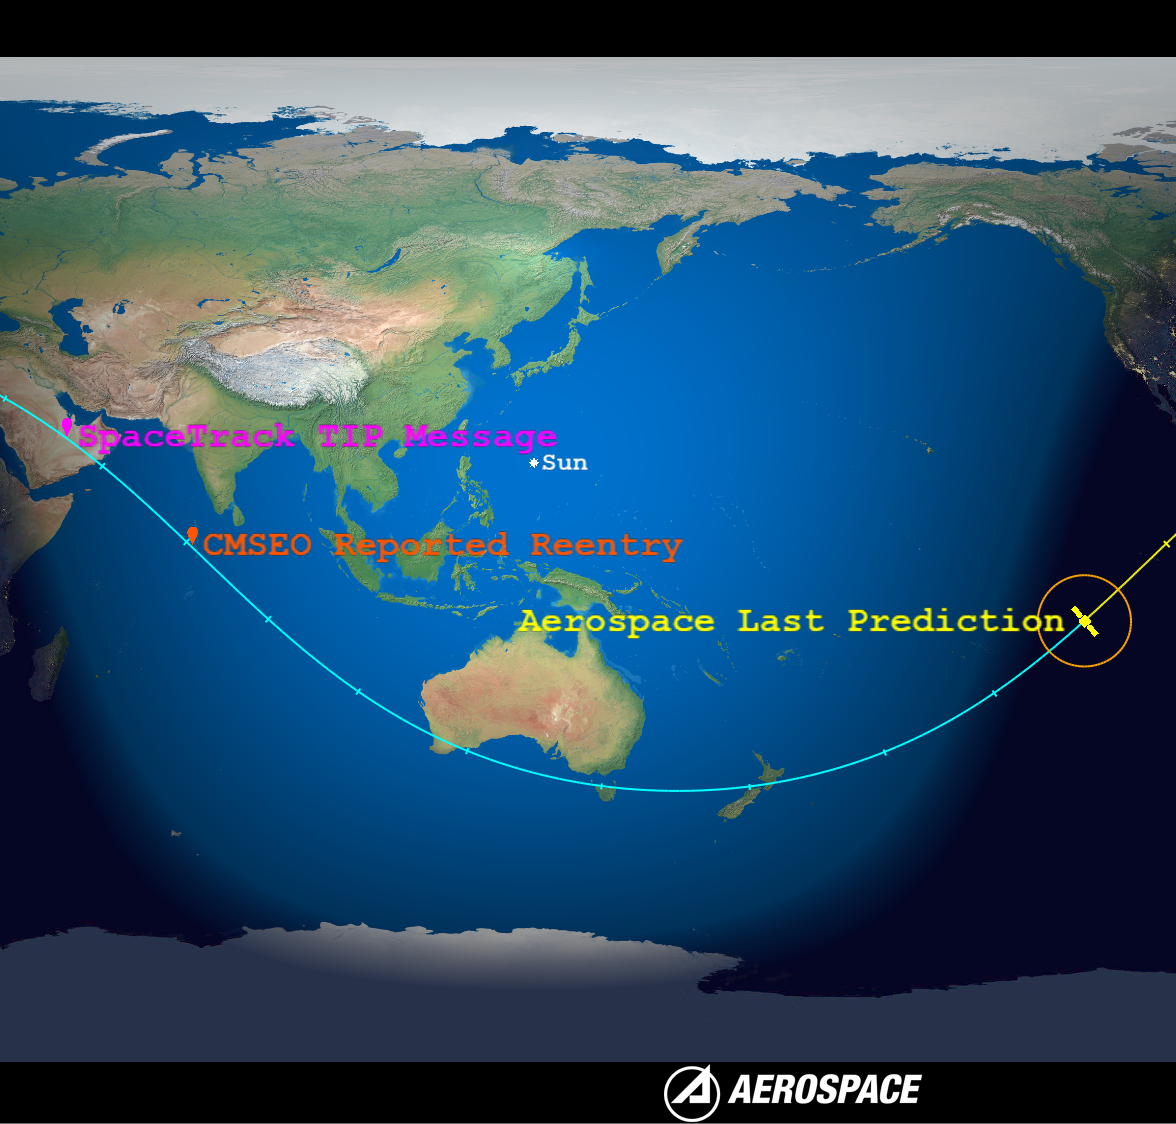 Long March 5B Reentry Path estimates compared. This image shows that the CORDS' prediction was the correct path, but estimated the reentry +40 minutes later.